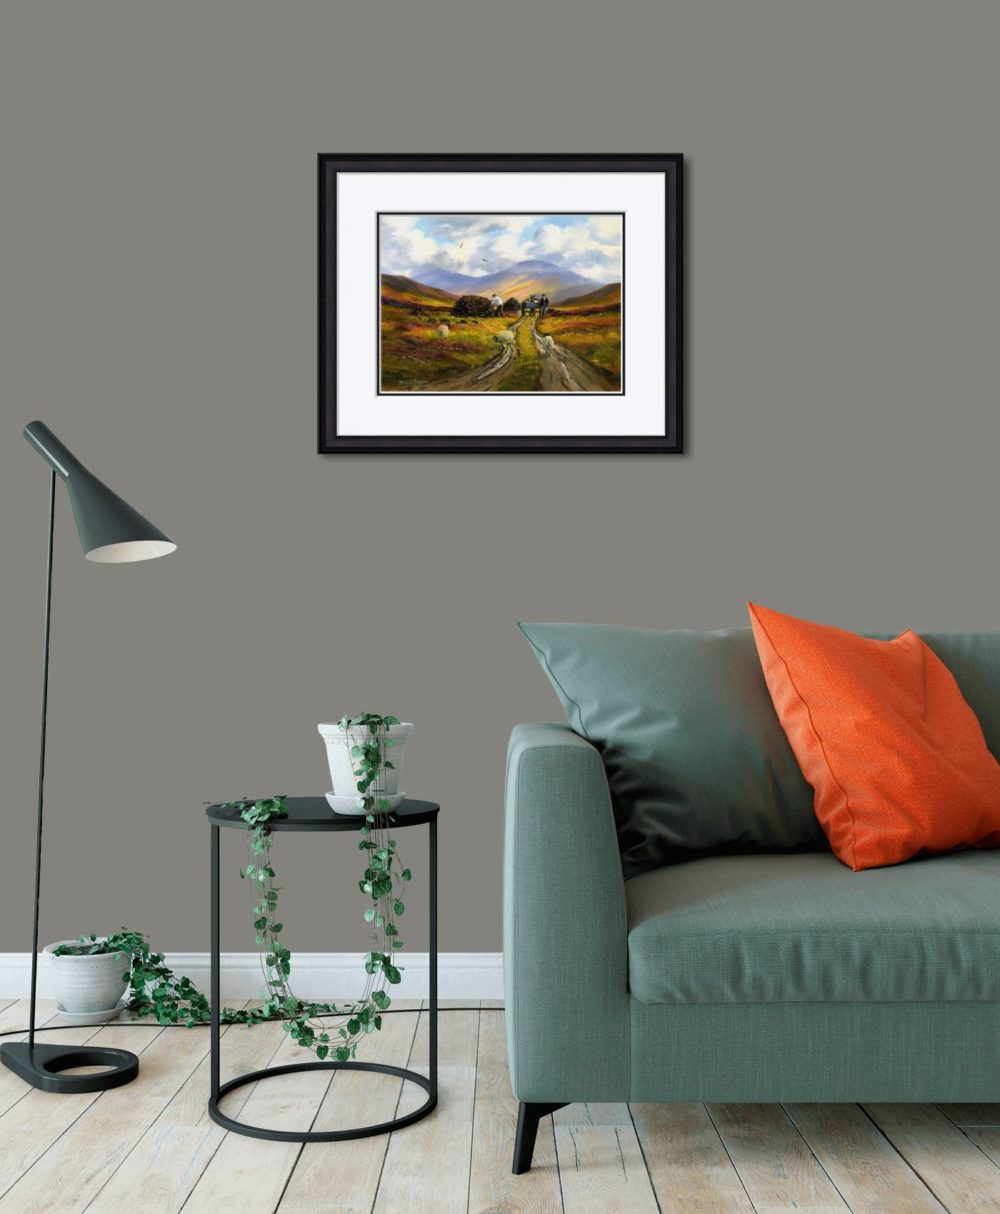 Collecting The Turf Print (Medium) in Black Frame in Room